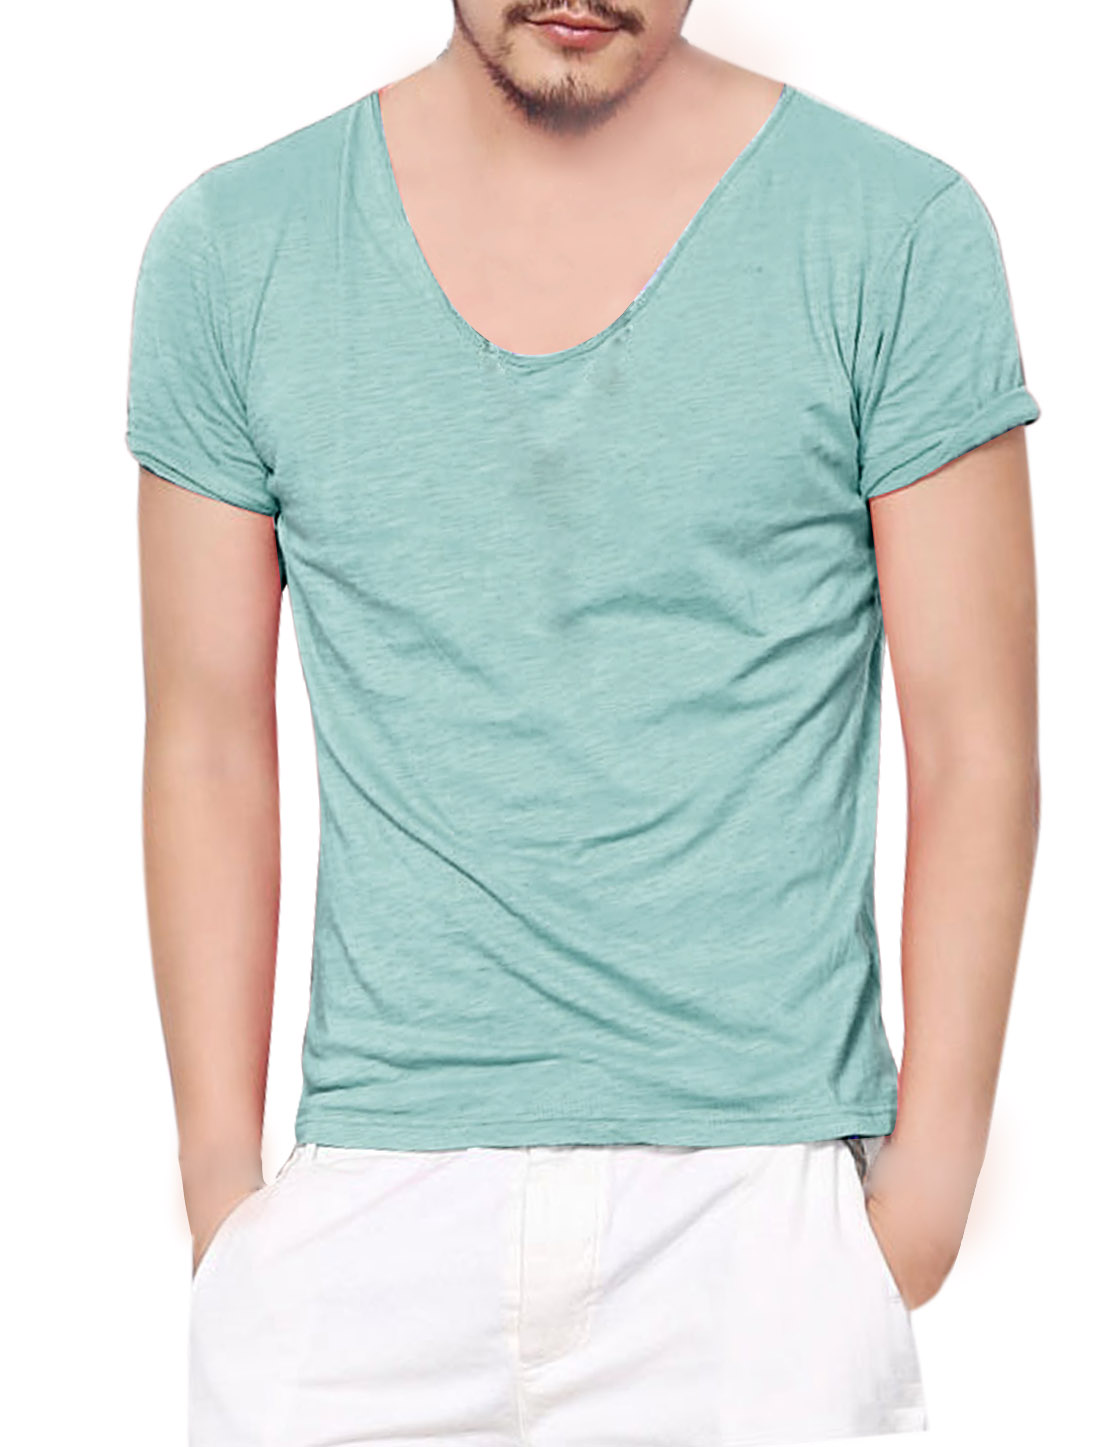 Man Summer Fit Scoop Neck Short Sleeve Top Dusty Green M